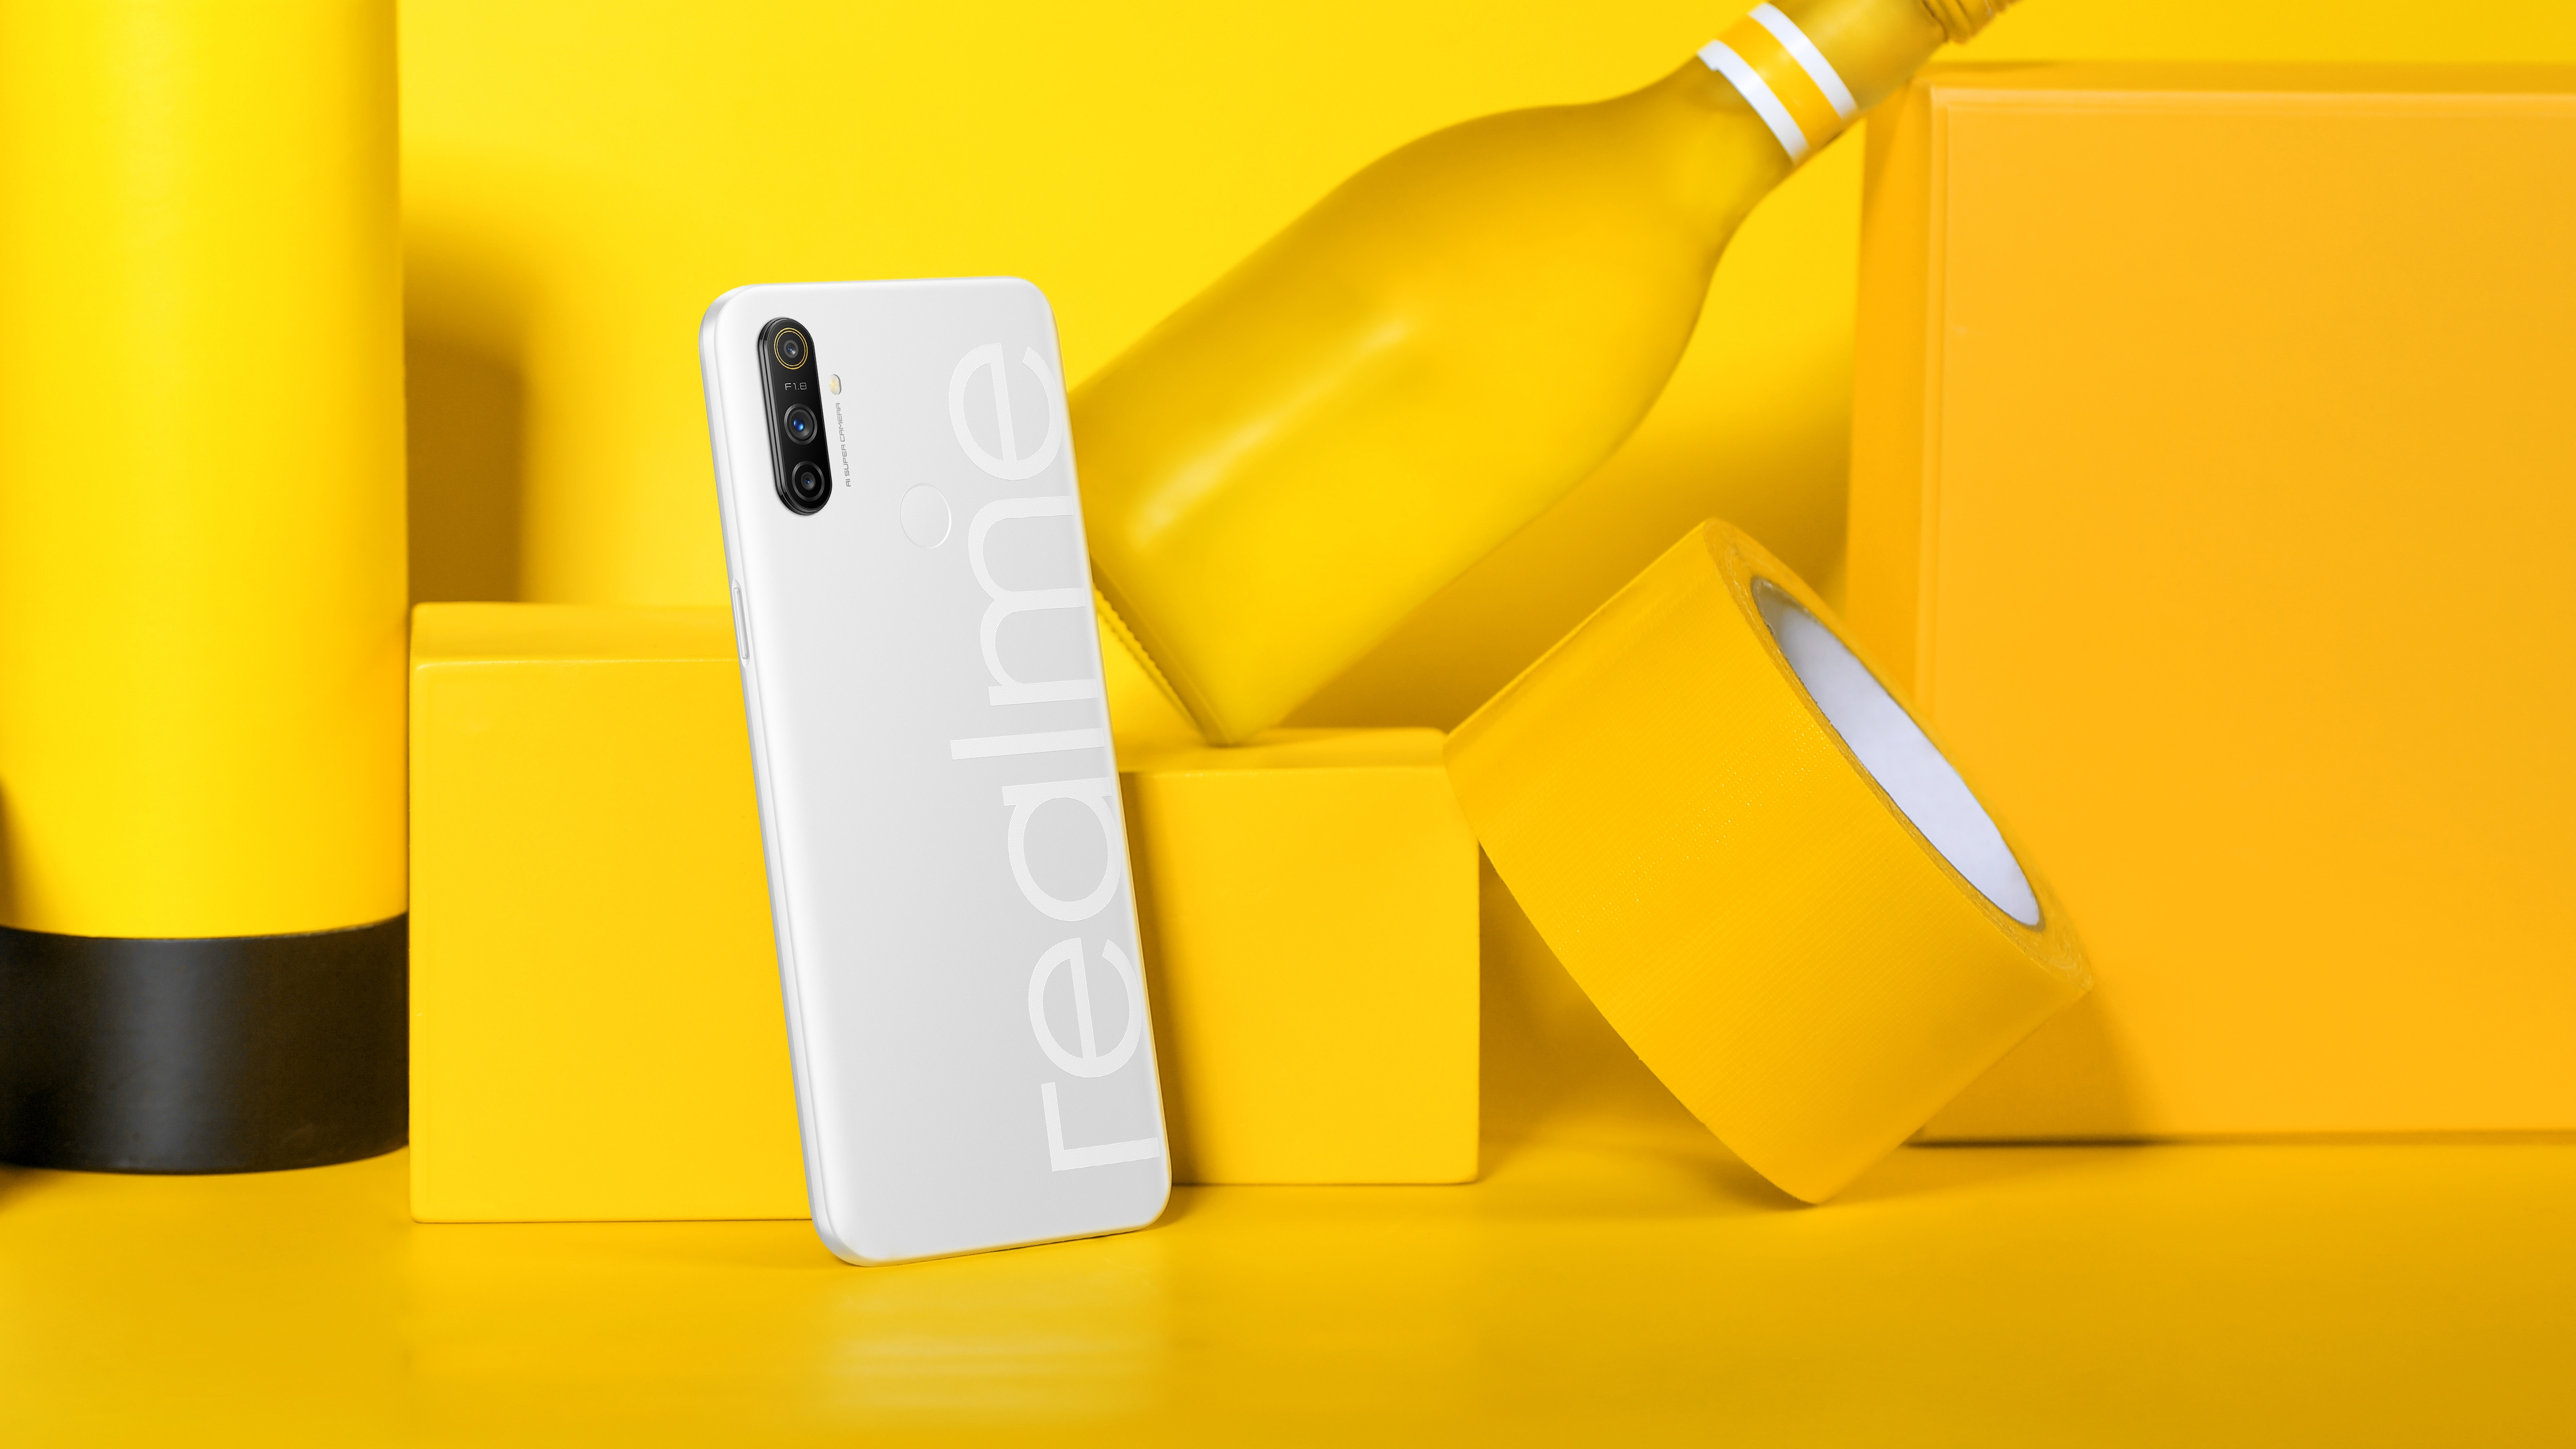 The Realme Narzo 10A is backed by a 5,000mAh battery and it will be available in So White and So Blue colour variants.